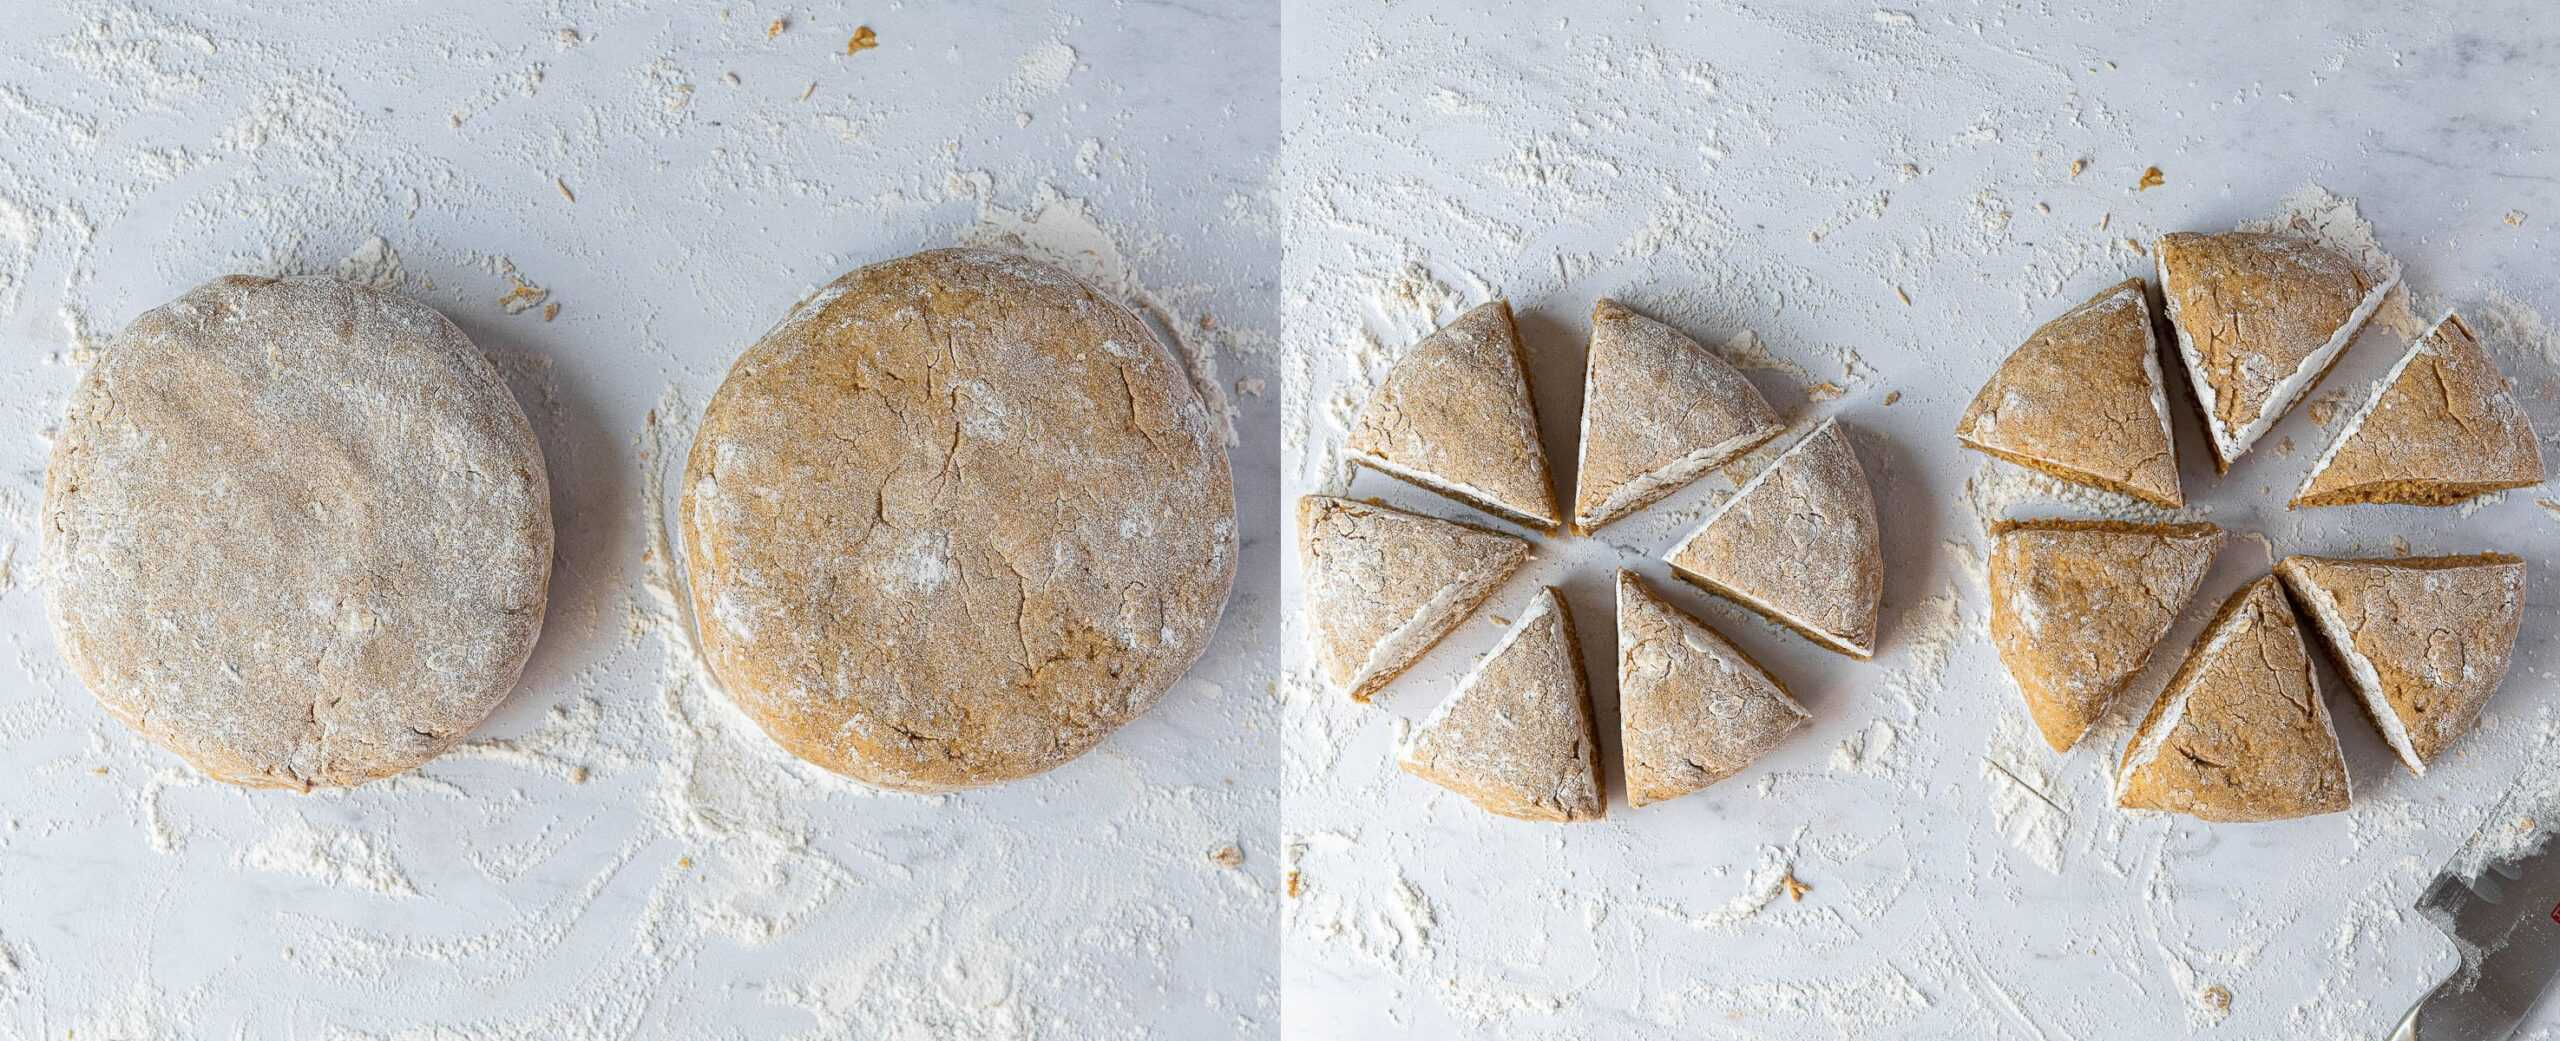 A two image collage of forming the dough into rounds and slicing them into triangles.